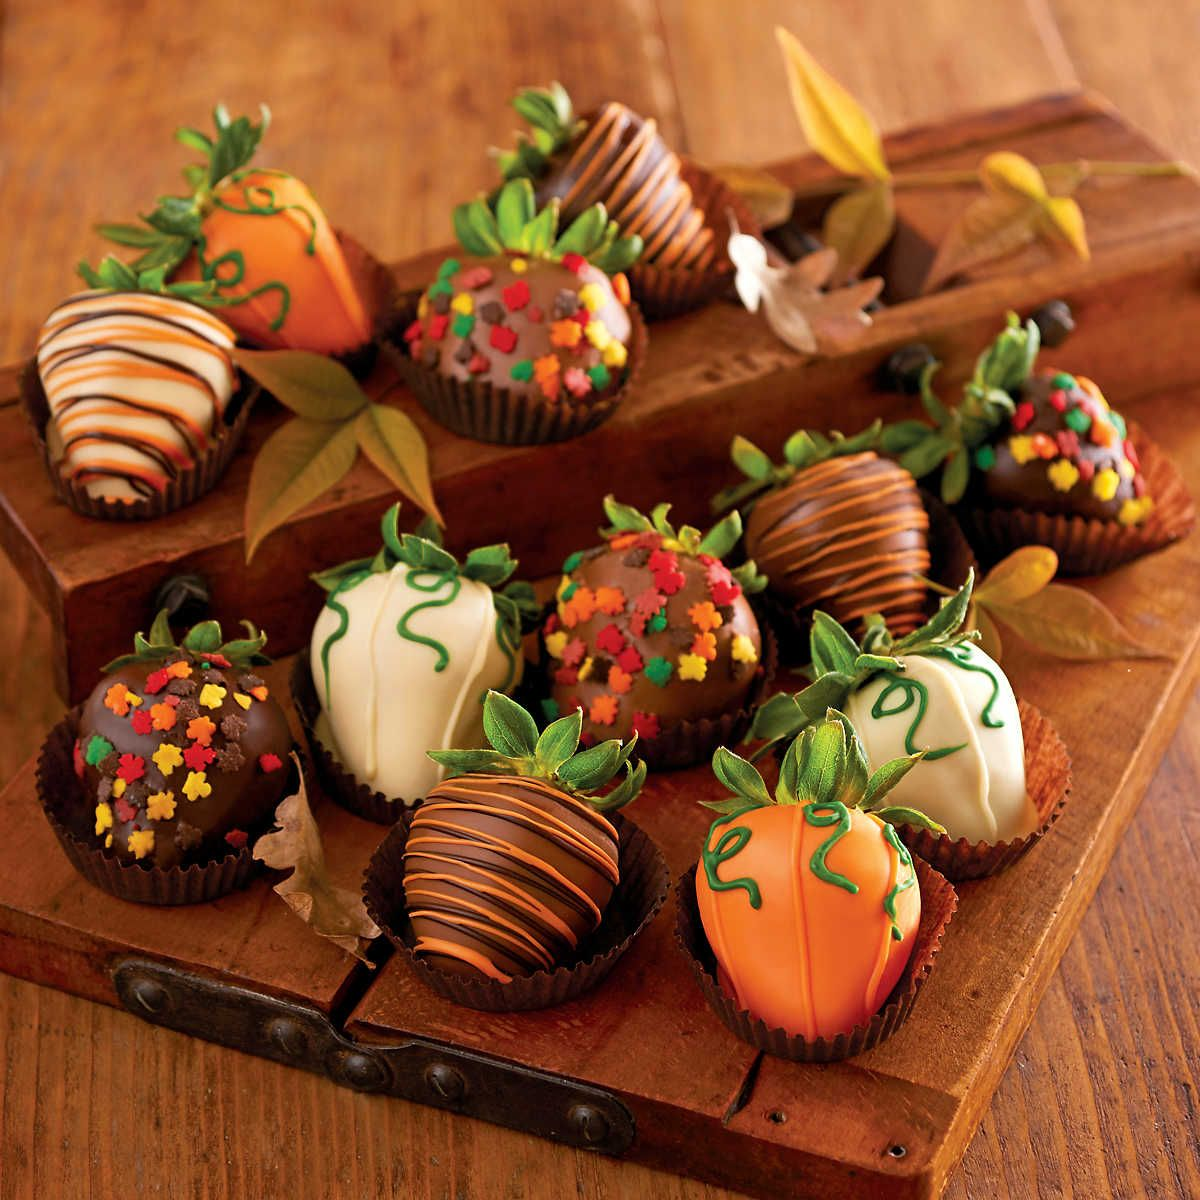 Harvest Chocolate-Covered Strawberries Delivery   Harry & David ...